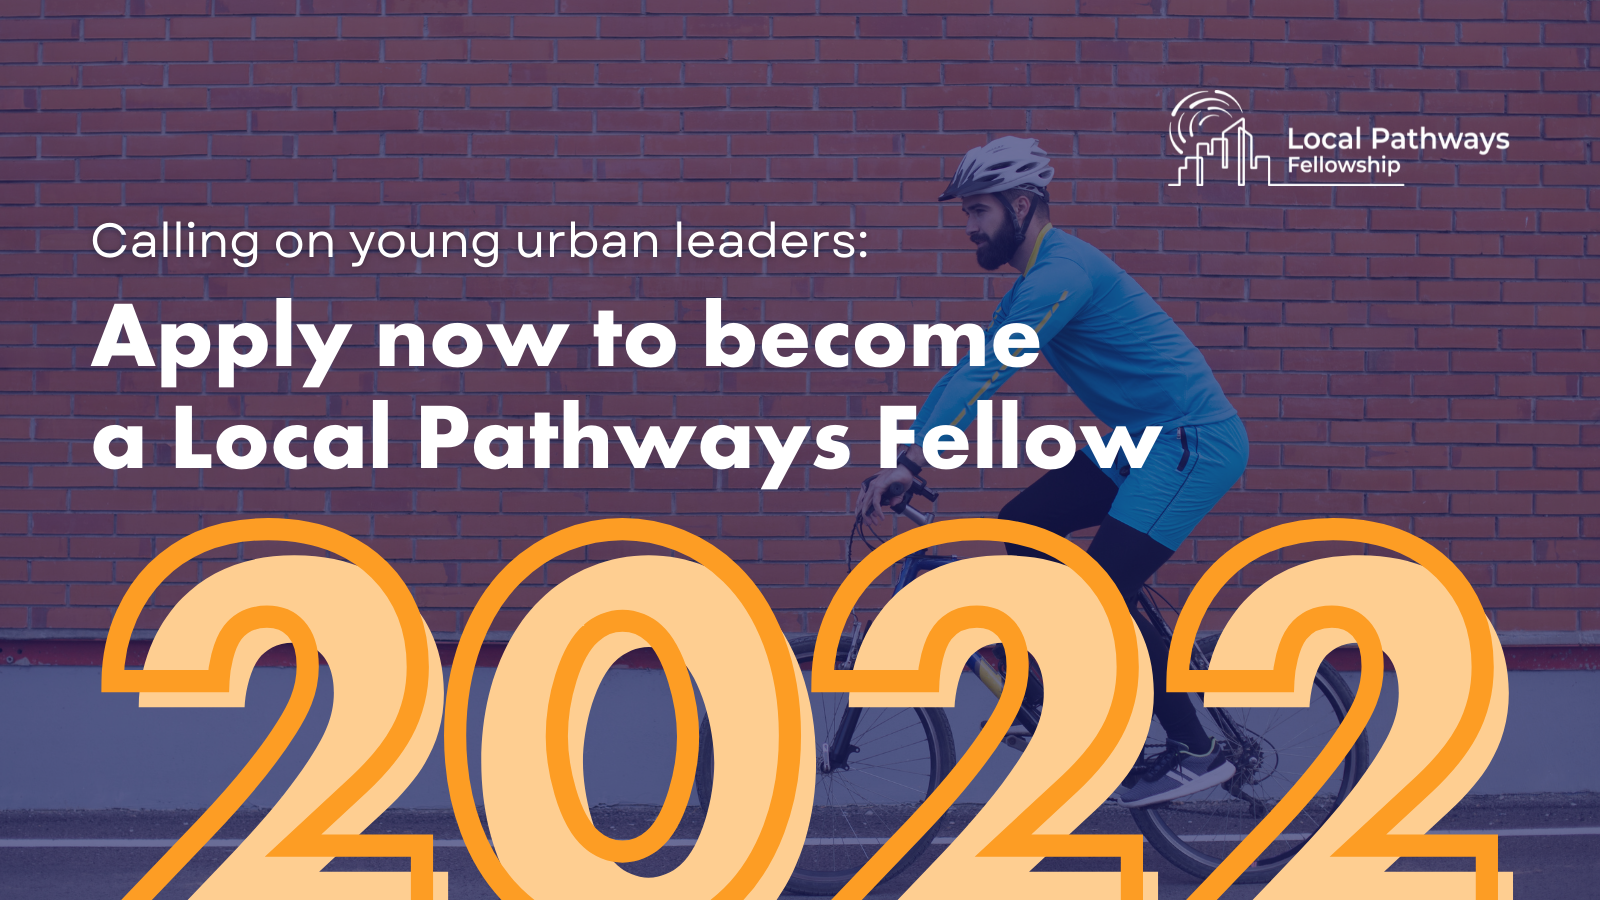 SDSN Youth opens the application period for its 2022 Local Pathways Fellowship